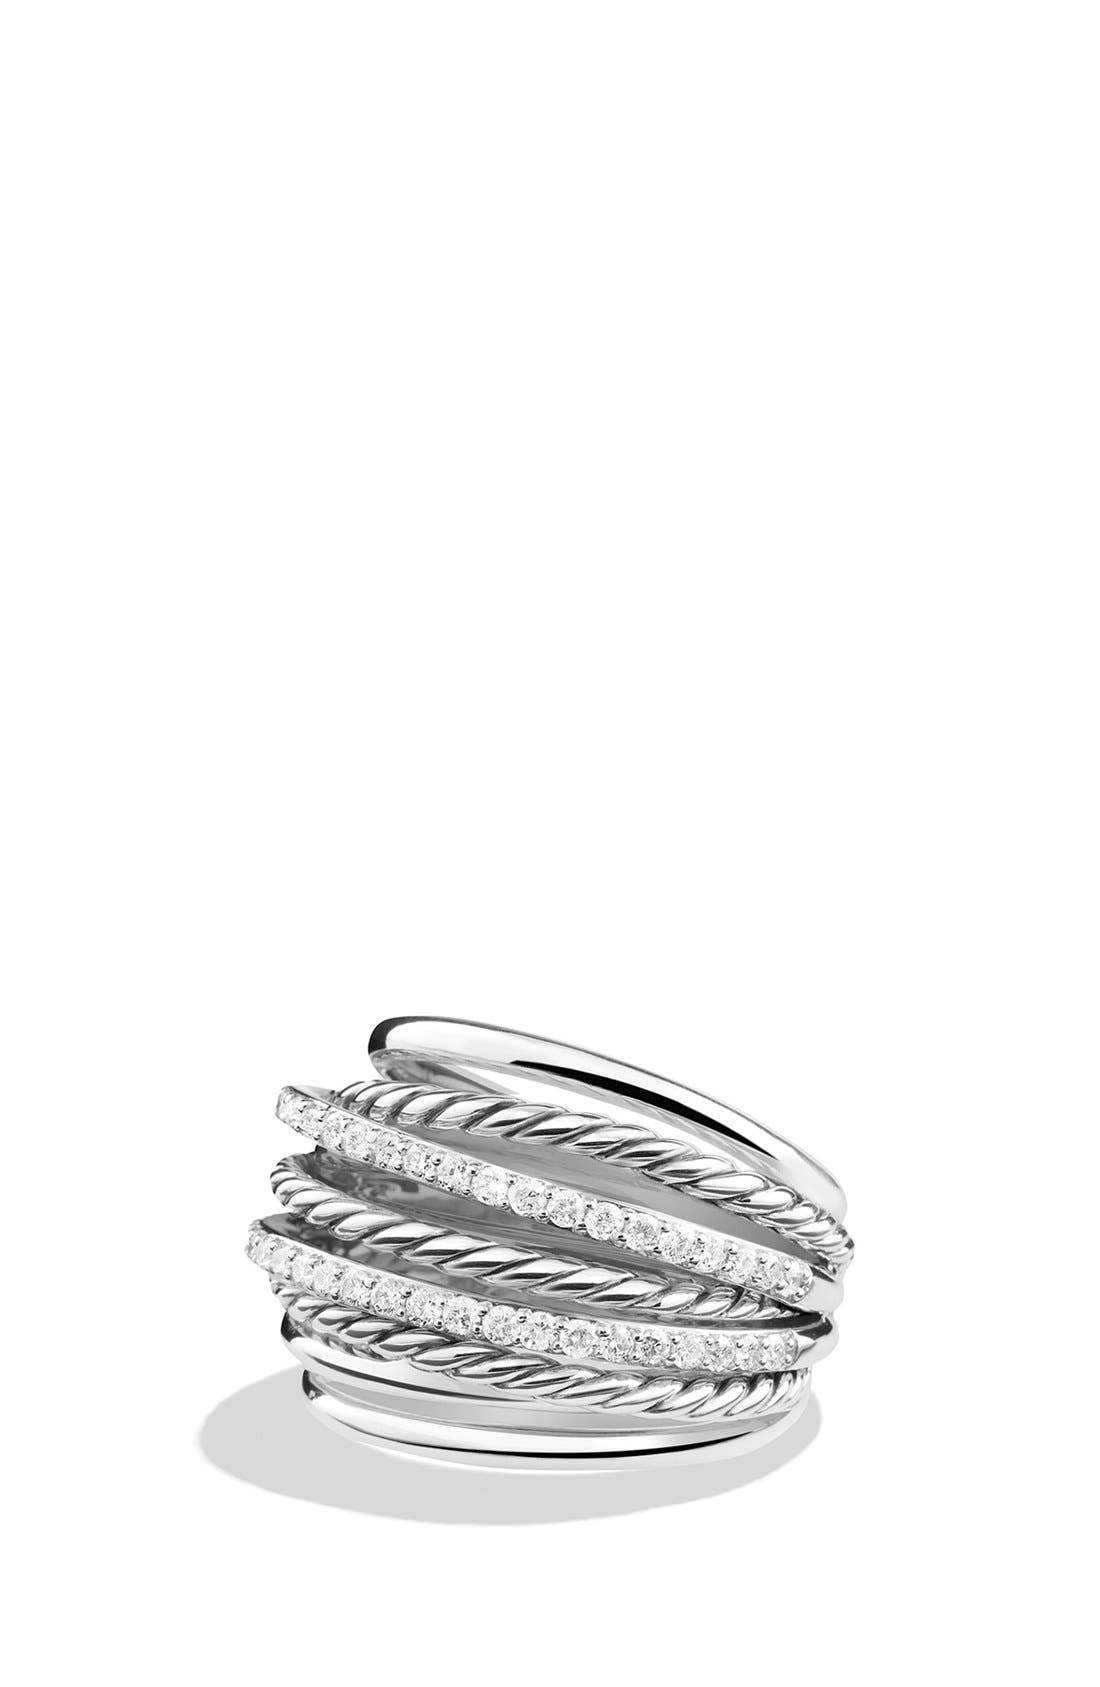 DAVID YURMAN Crossover Dome Ring with Diamonds